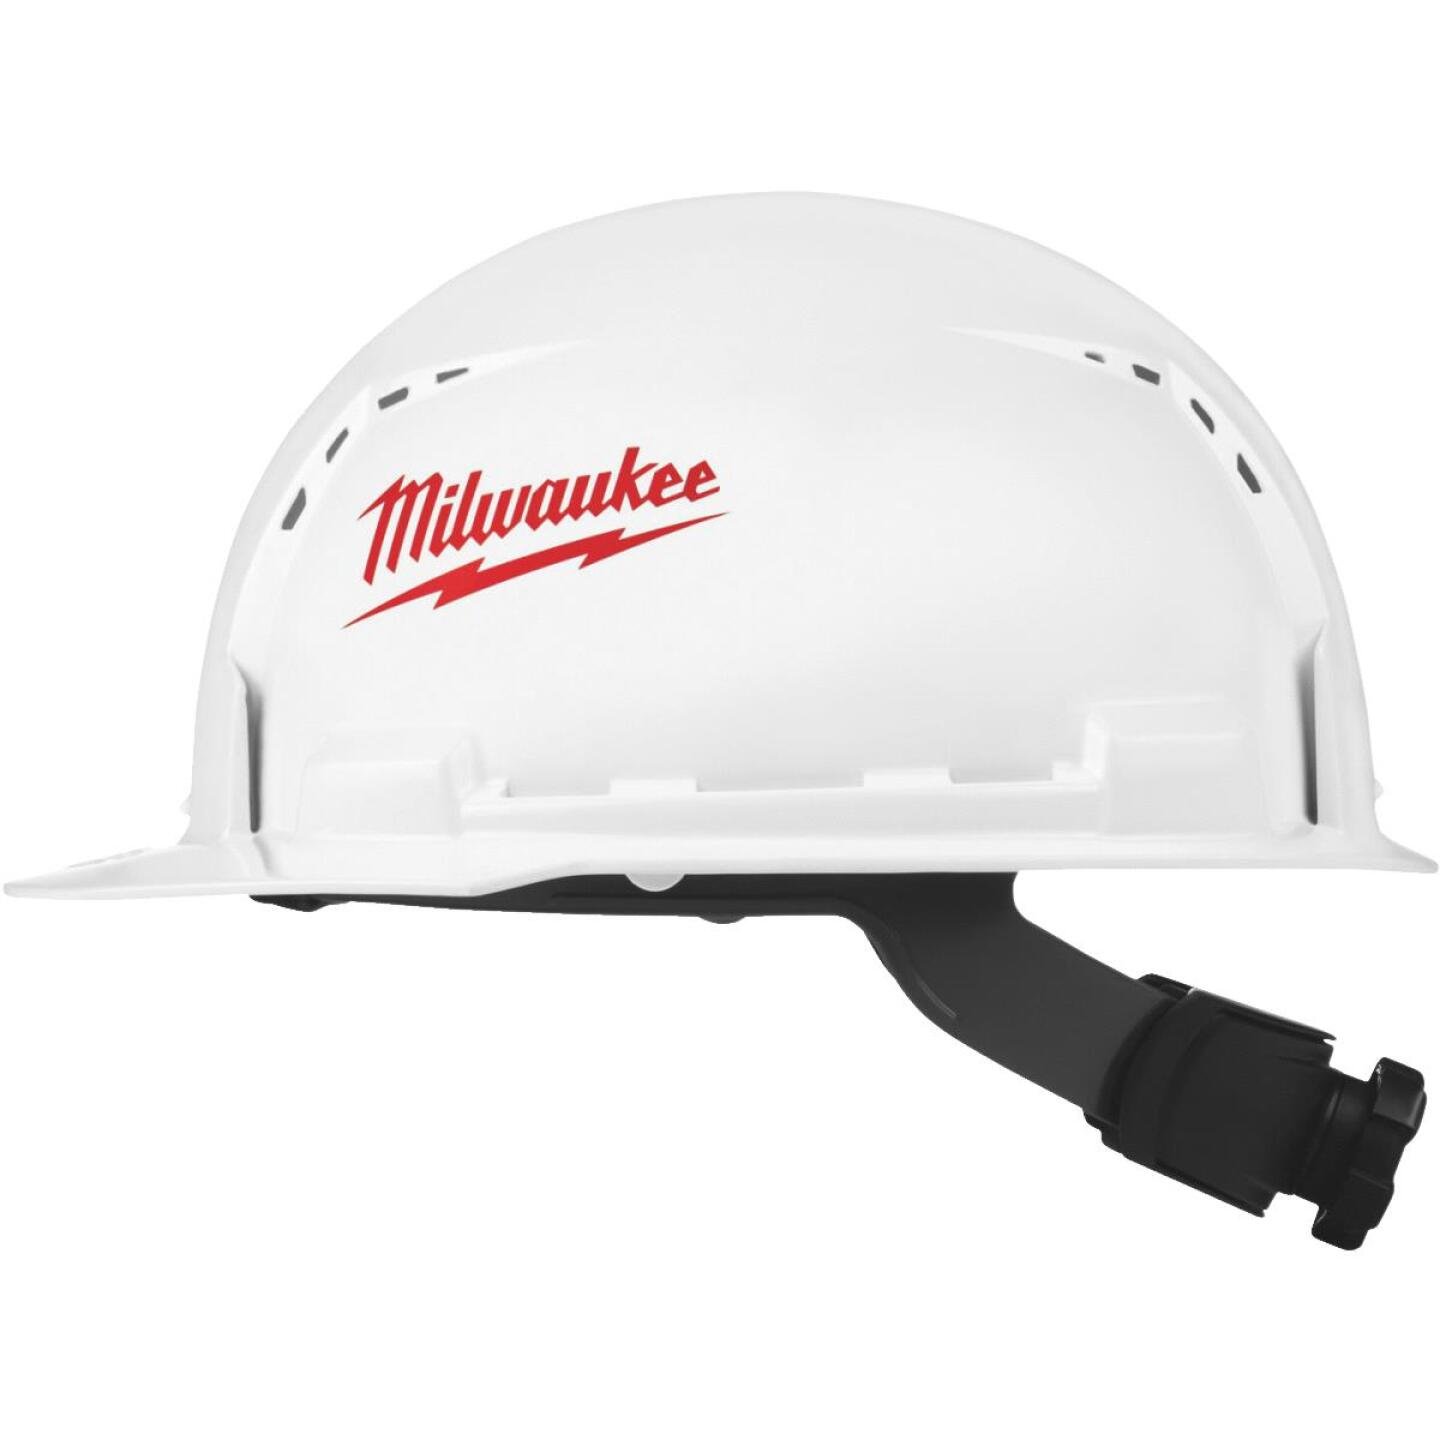 Milwaukee White & Red Front Brim Vented Ratcheting Type 1 Class C Hard Hat Image 1